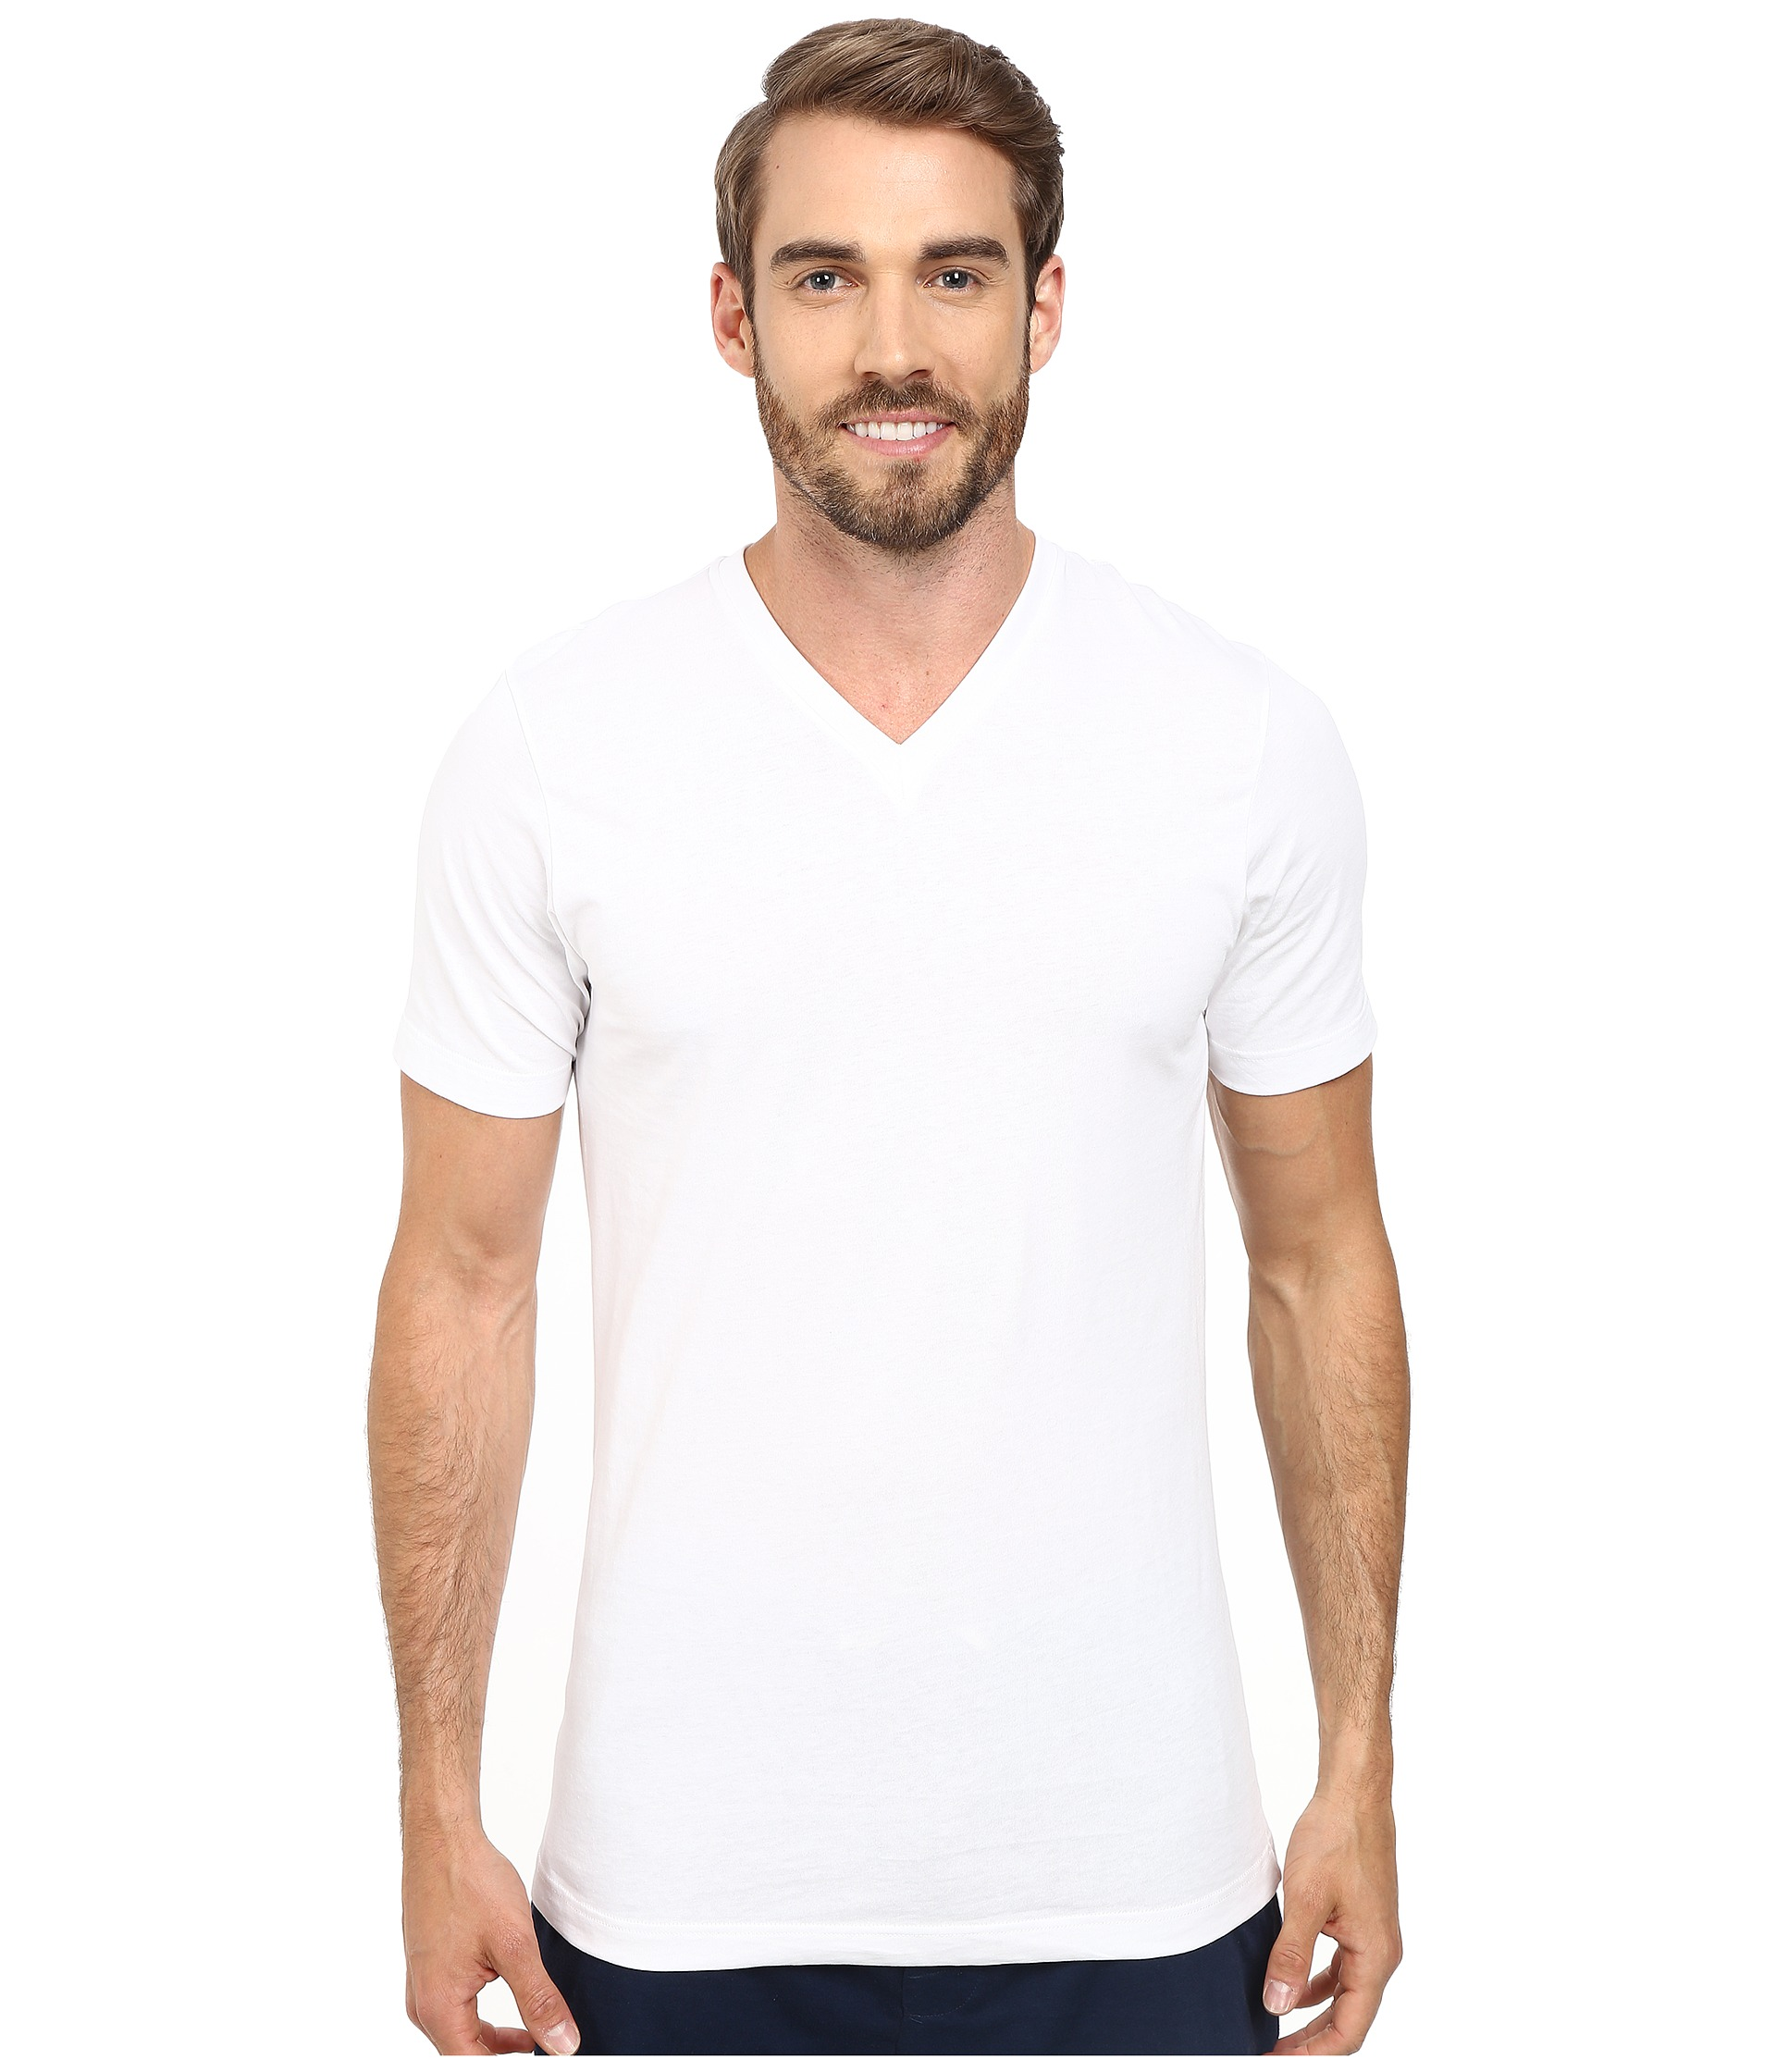 jockey cotton slim fit v neck neck t shirt 3 pack at